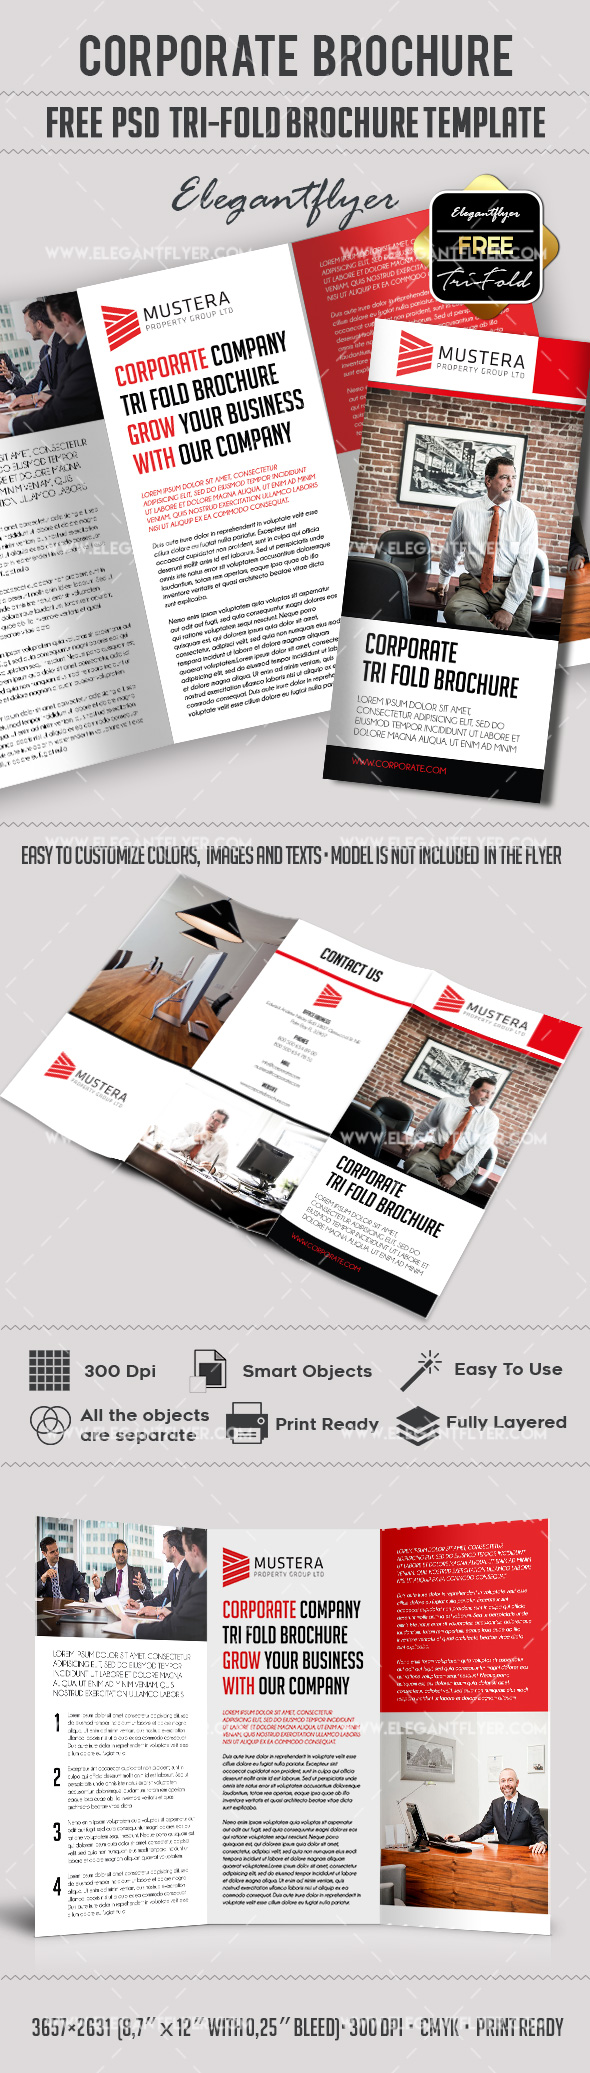 Corporate Brochure Template Free